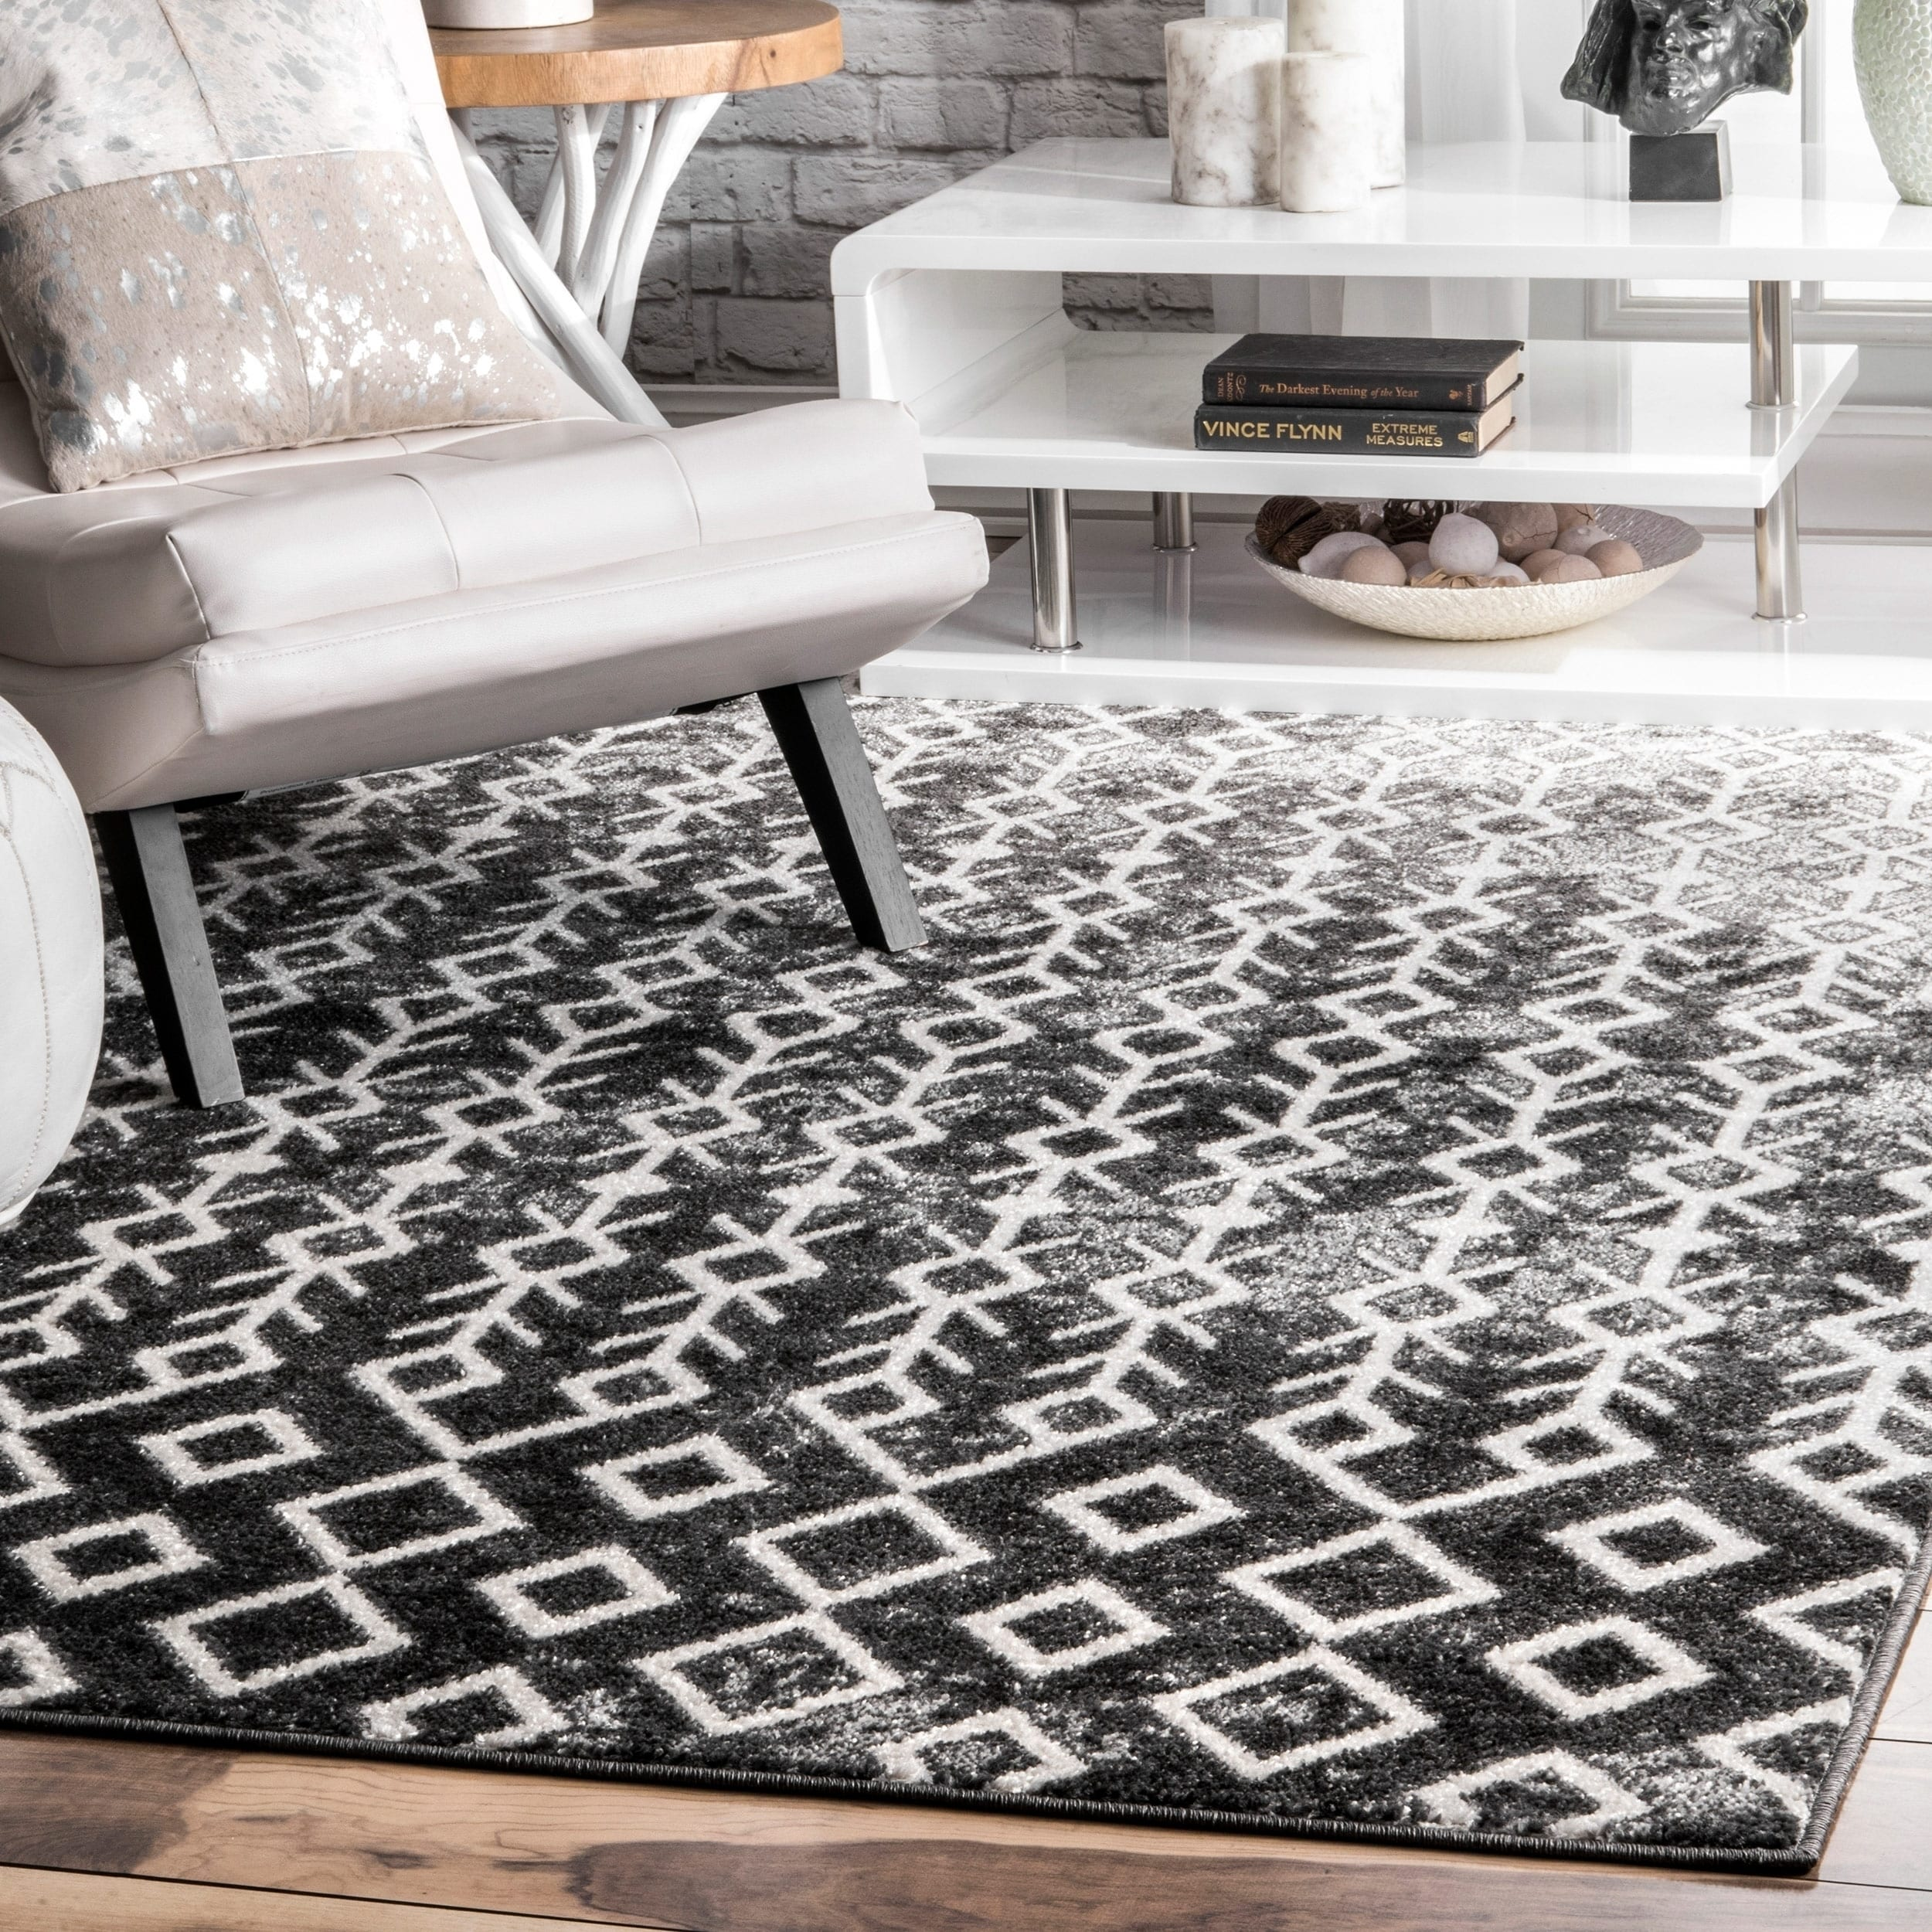 Picture of: Nuloom Black And White Modern Abstract Boho Electric Lined Ombre Area Rug On Sale Overstock 23001301 5 X 8 Black White